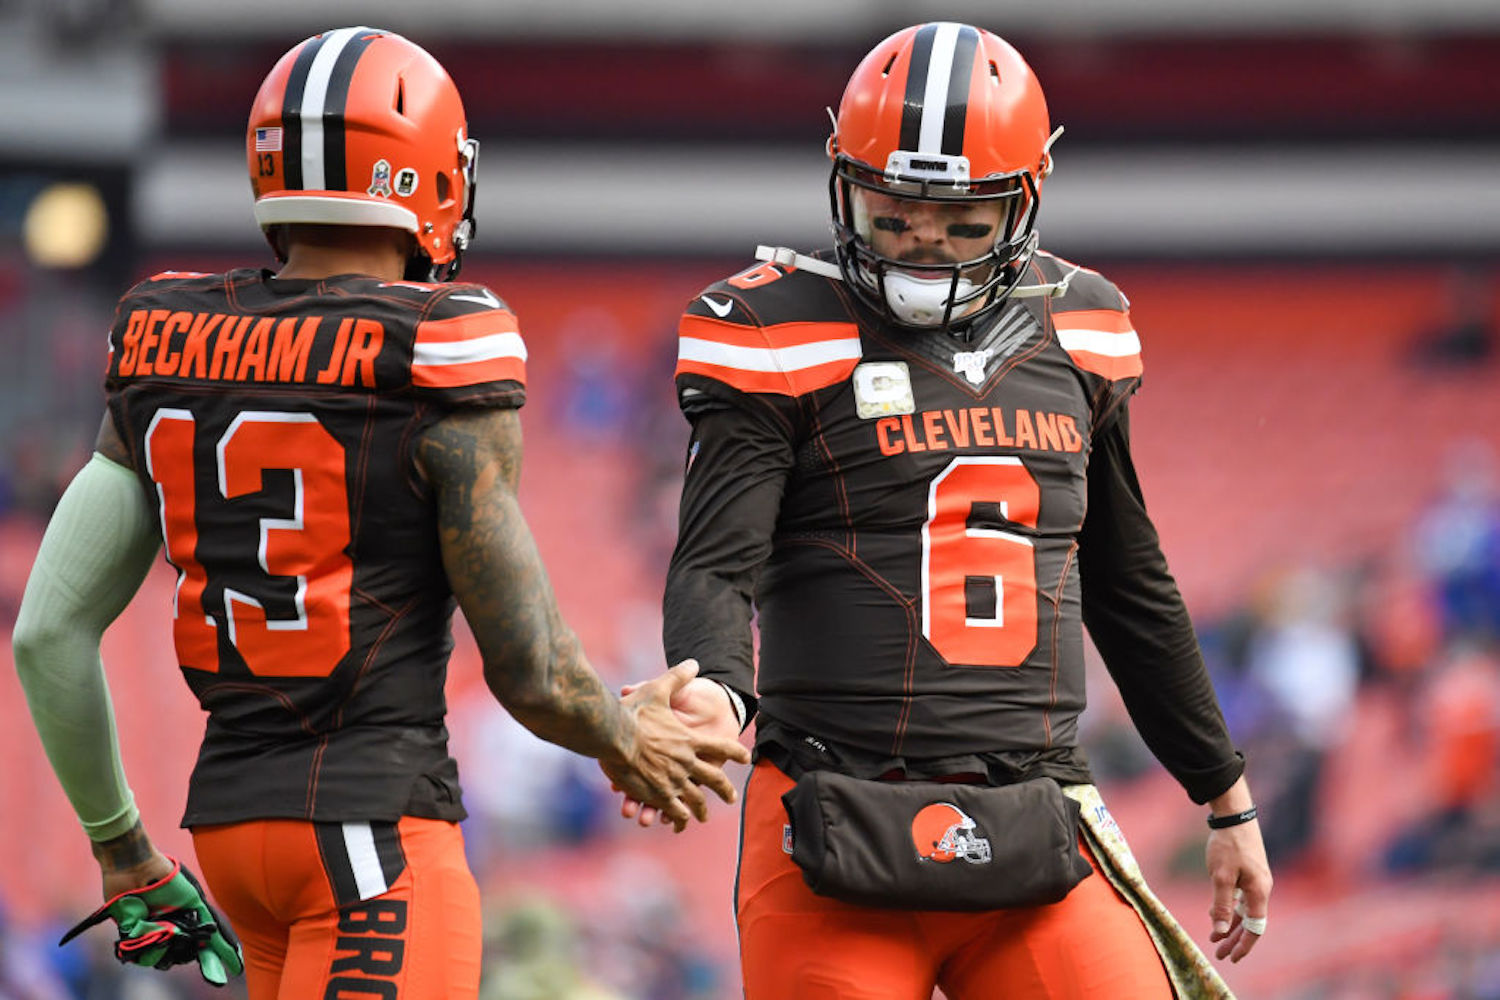 The Baker Mayfield-Odell Beckham Jr. connection sputtered all last season, but Beckham is convinced the tides will turn in 2020.